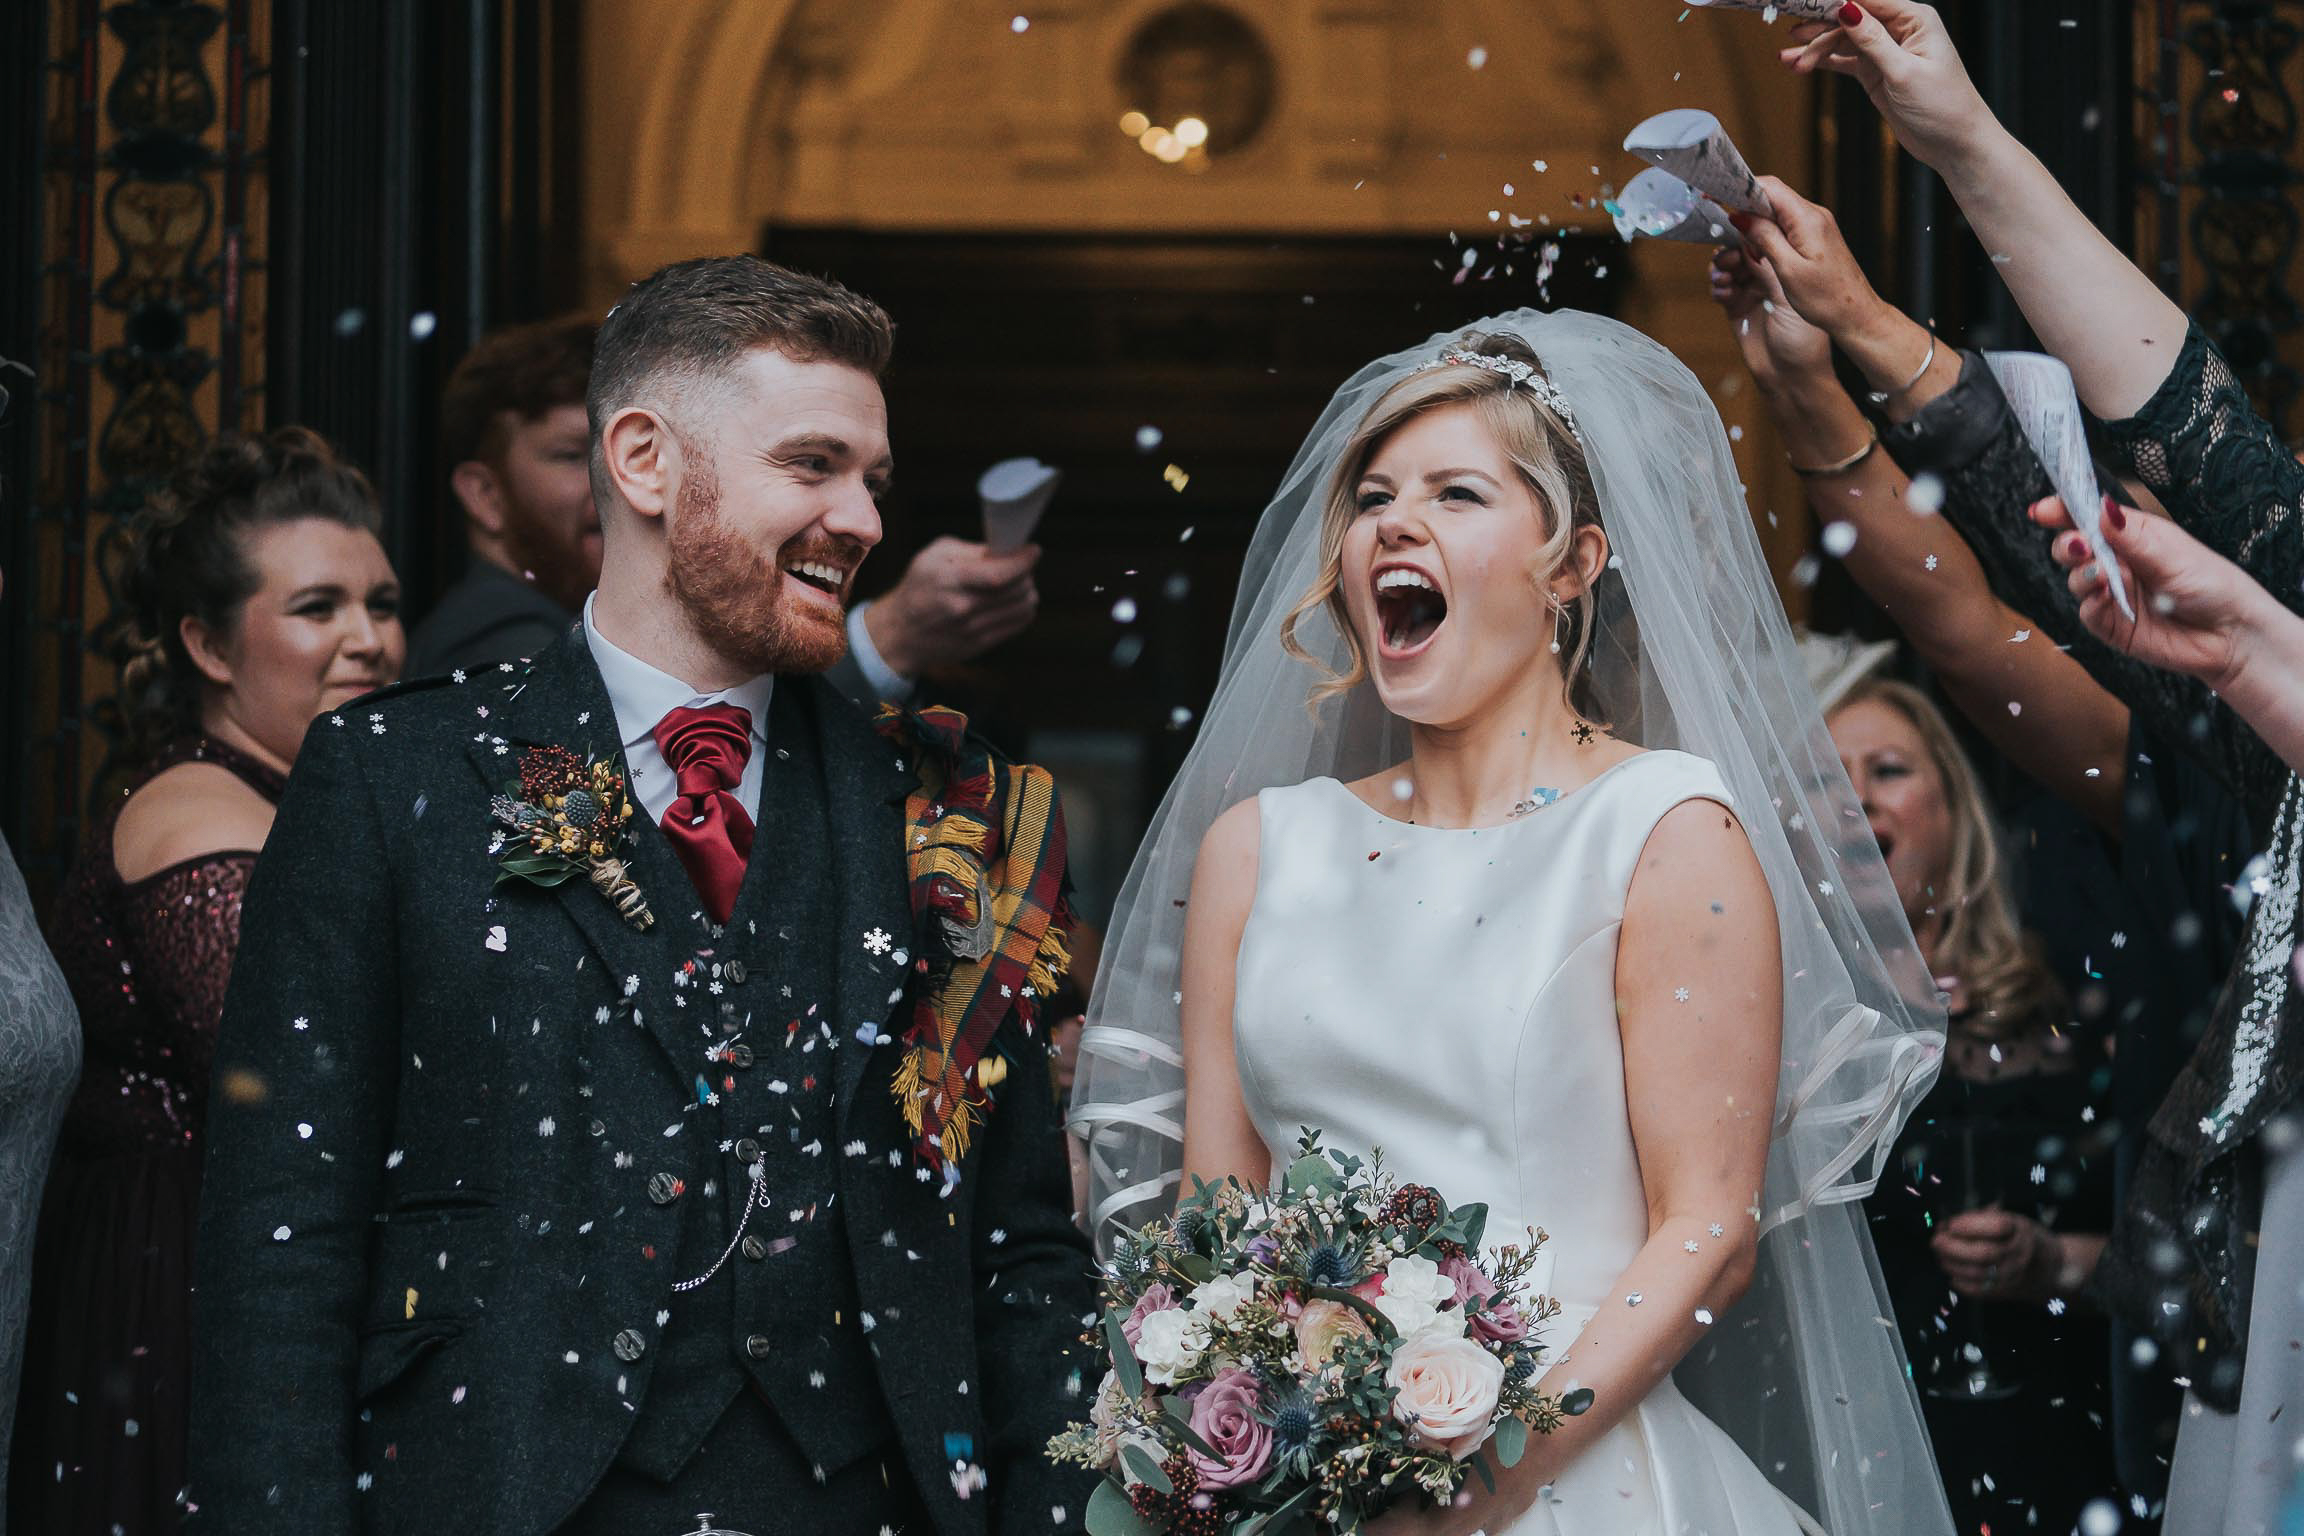 a confetti shot during a wedding at the Double Tree by Hilton in Liverpool city centre